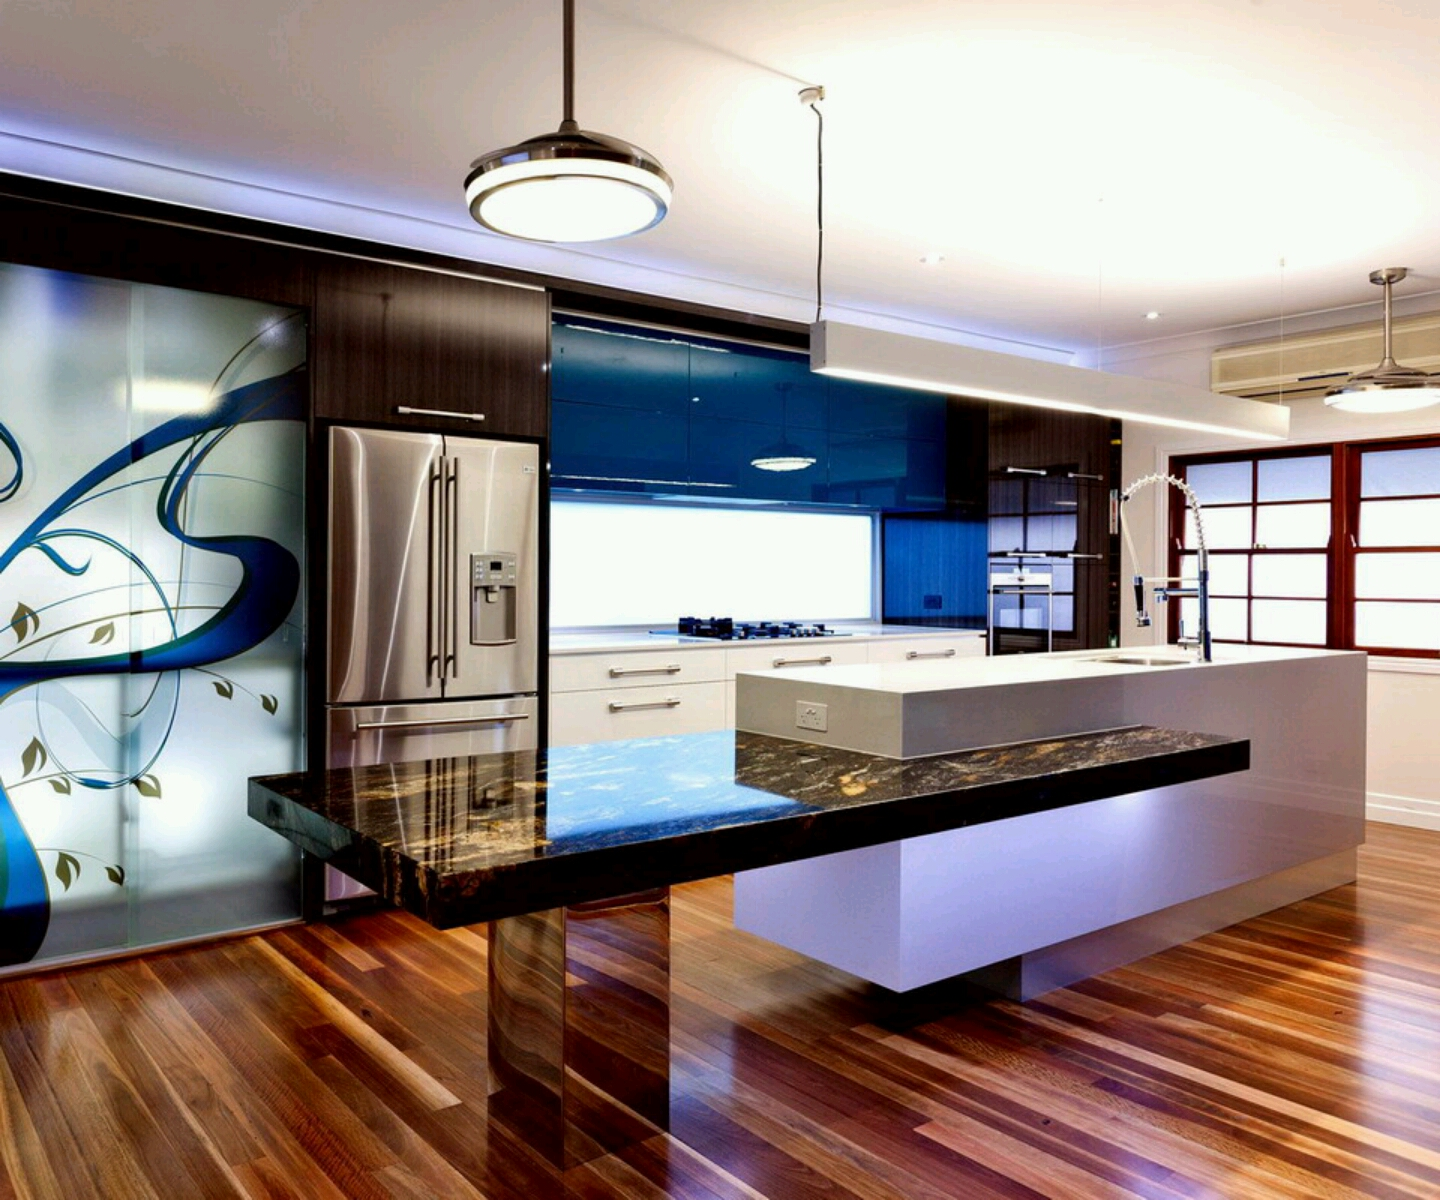 Ultra modern kitchen designs ideas new home designs Home ideas